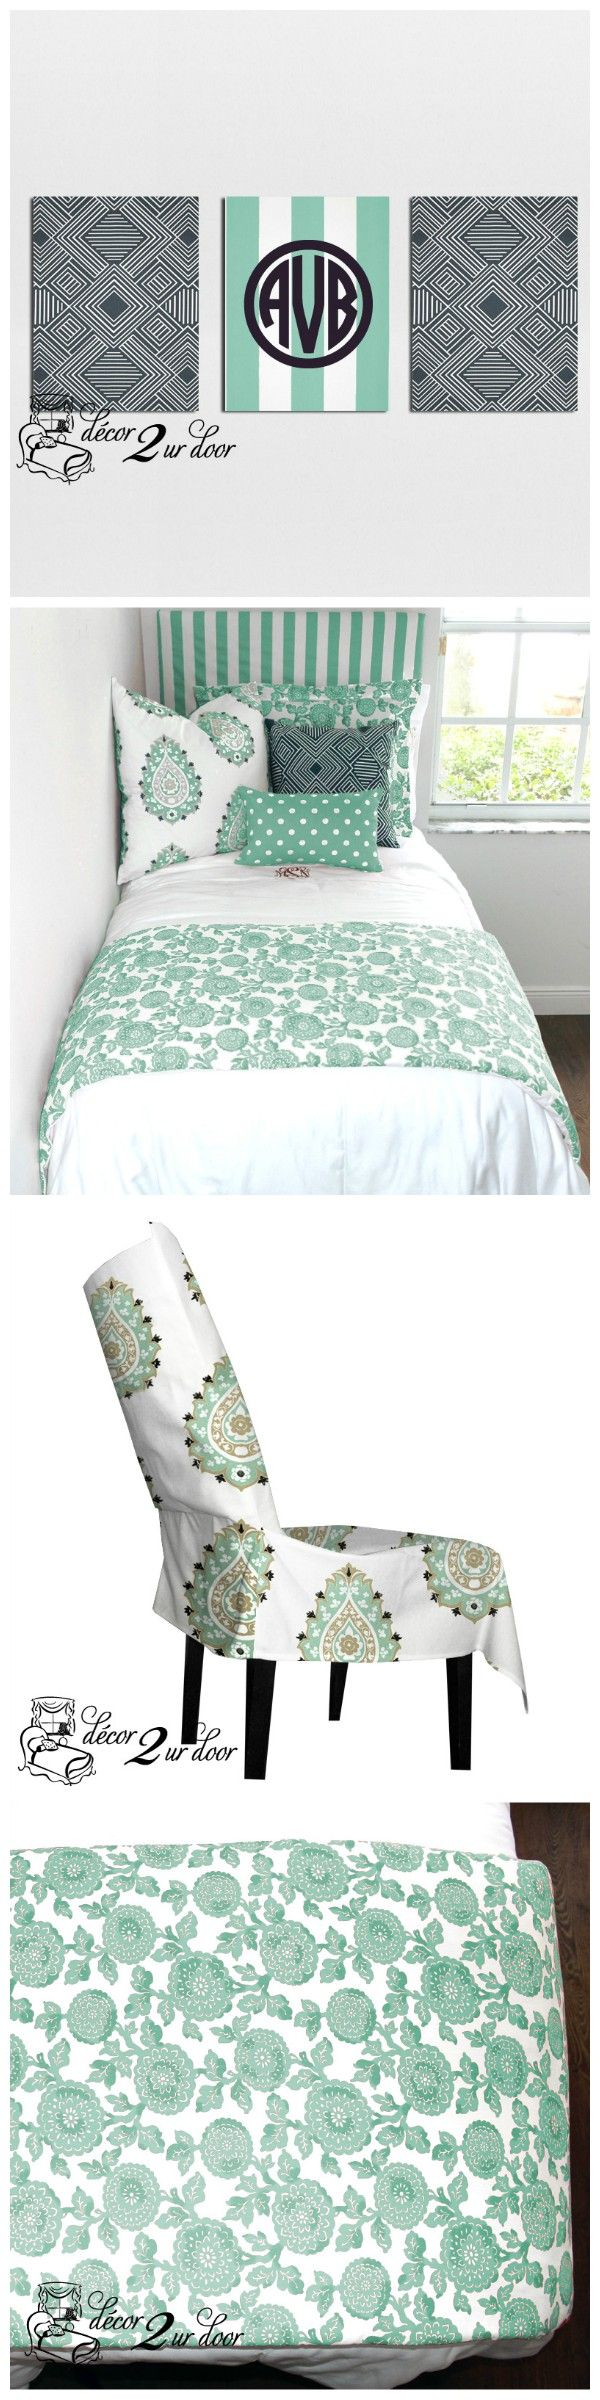 Perfect For Dorm Rooms, Teen Girl Bedroom, Apartment U0026 Home!